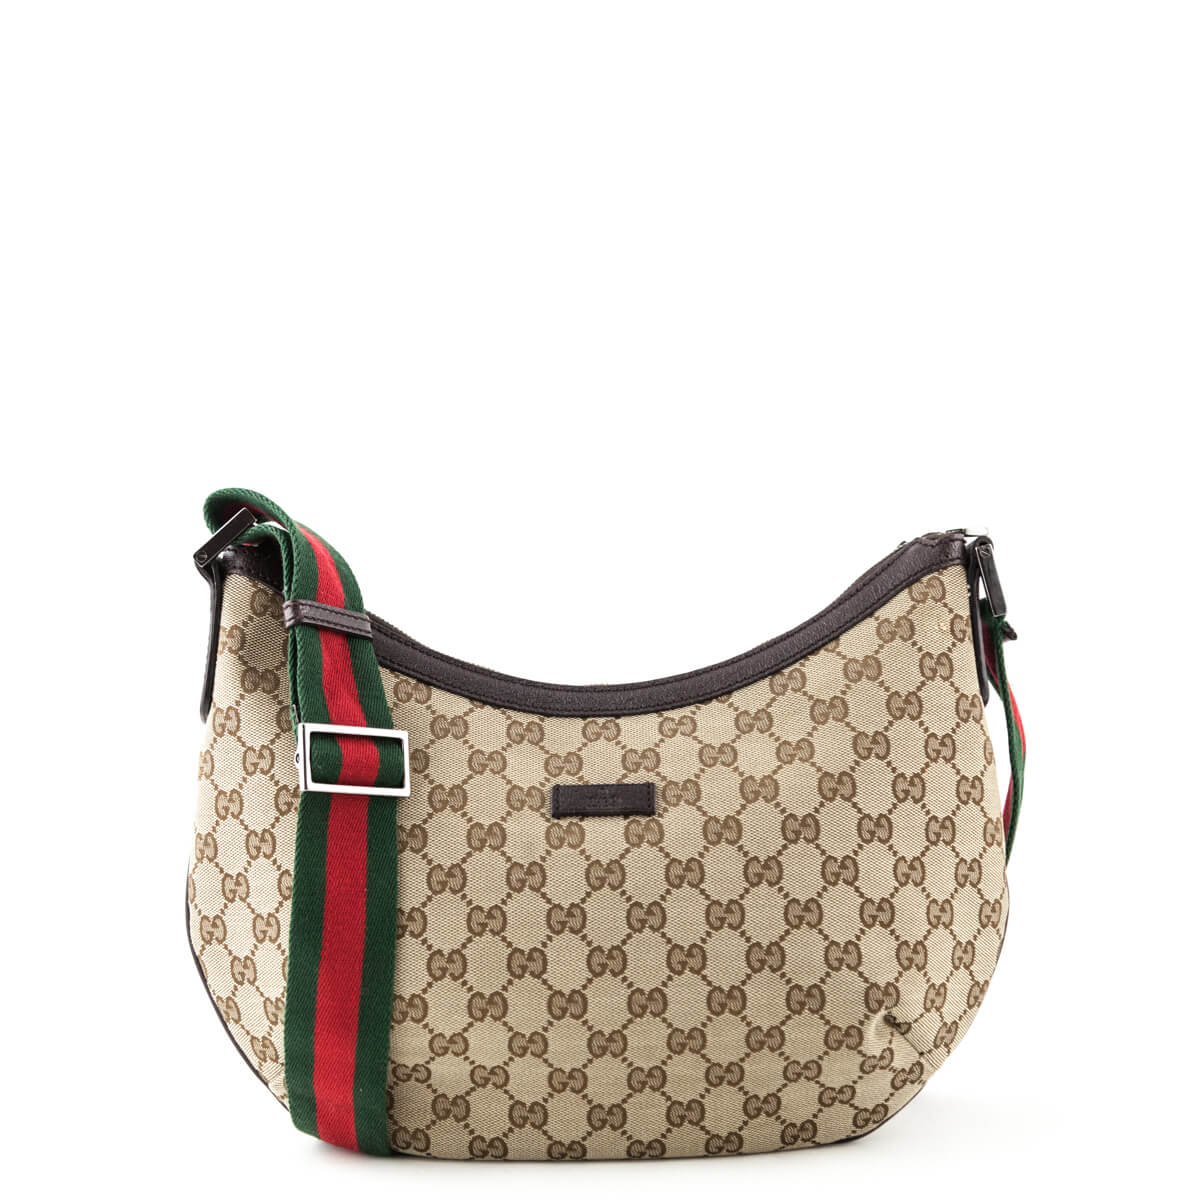 ecc42b1d0a Gucci GG Monogram Canvas Web Messenger Bag - LOVE that BAG - Preowned  Authentic Designer Handbags ...